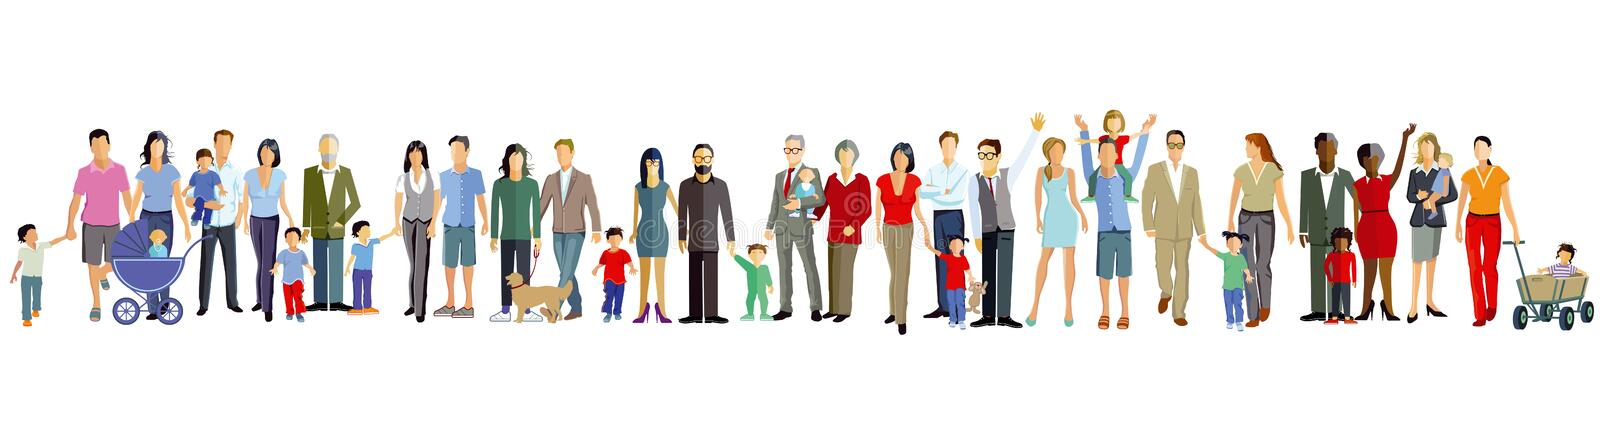 Family generations illustration royalty free illustration